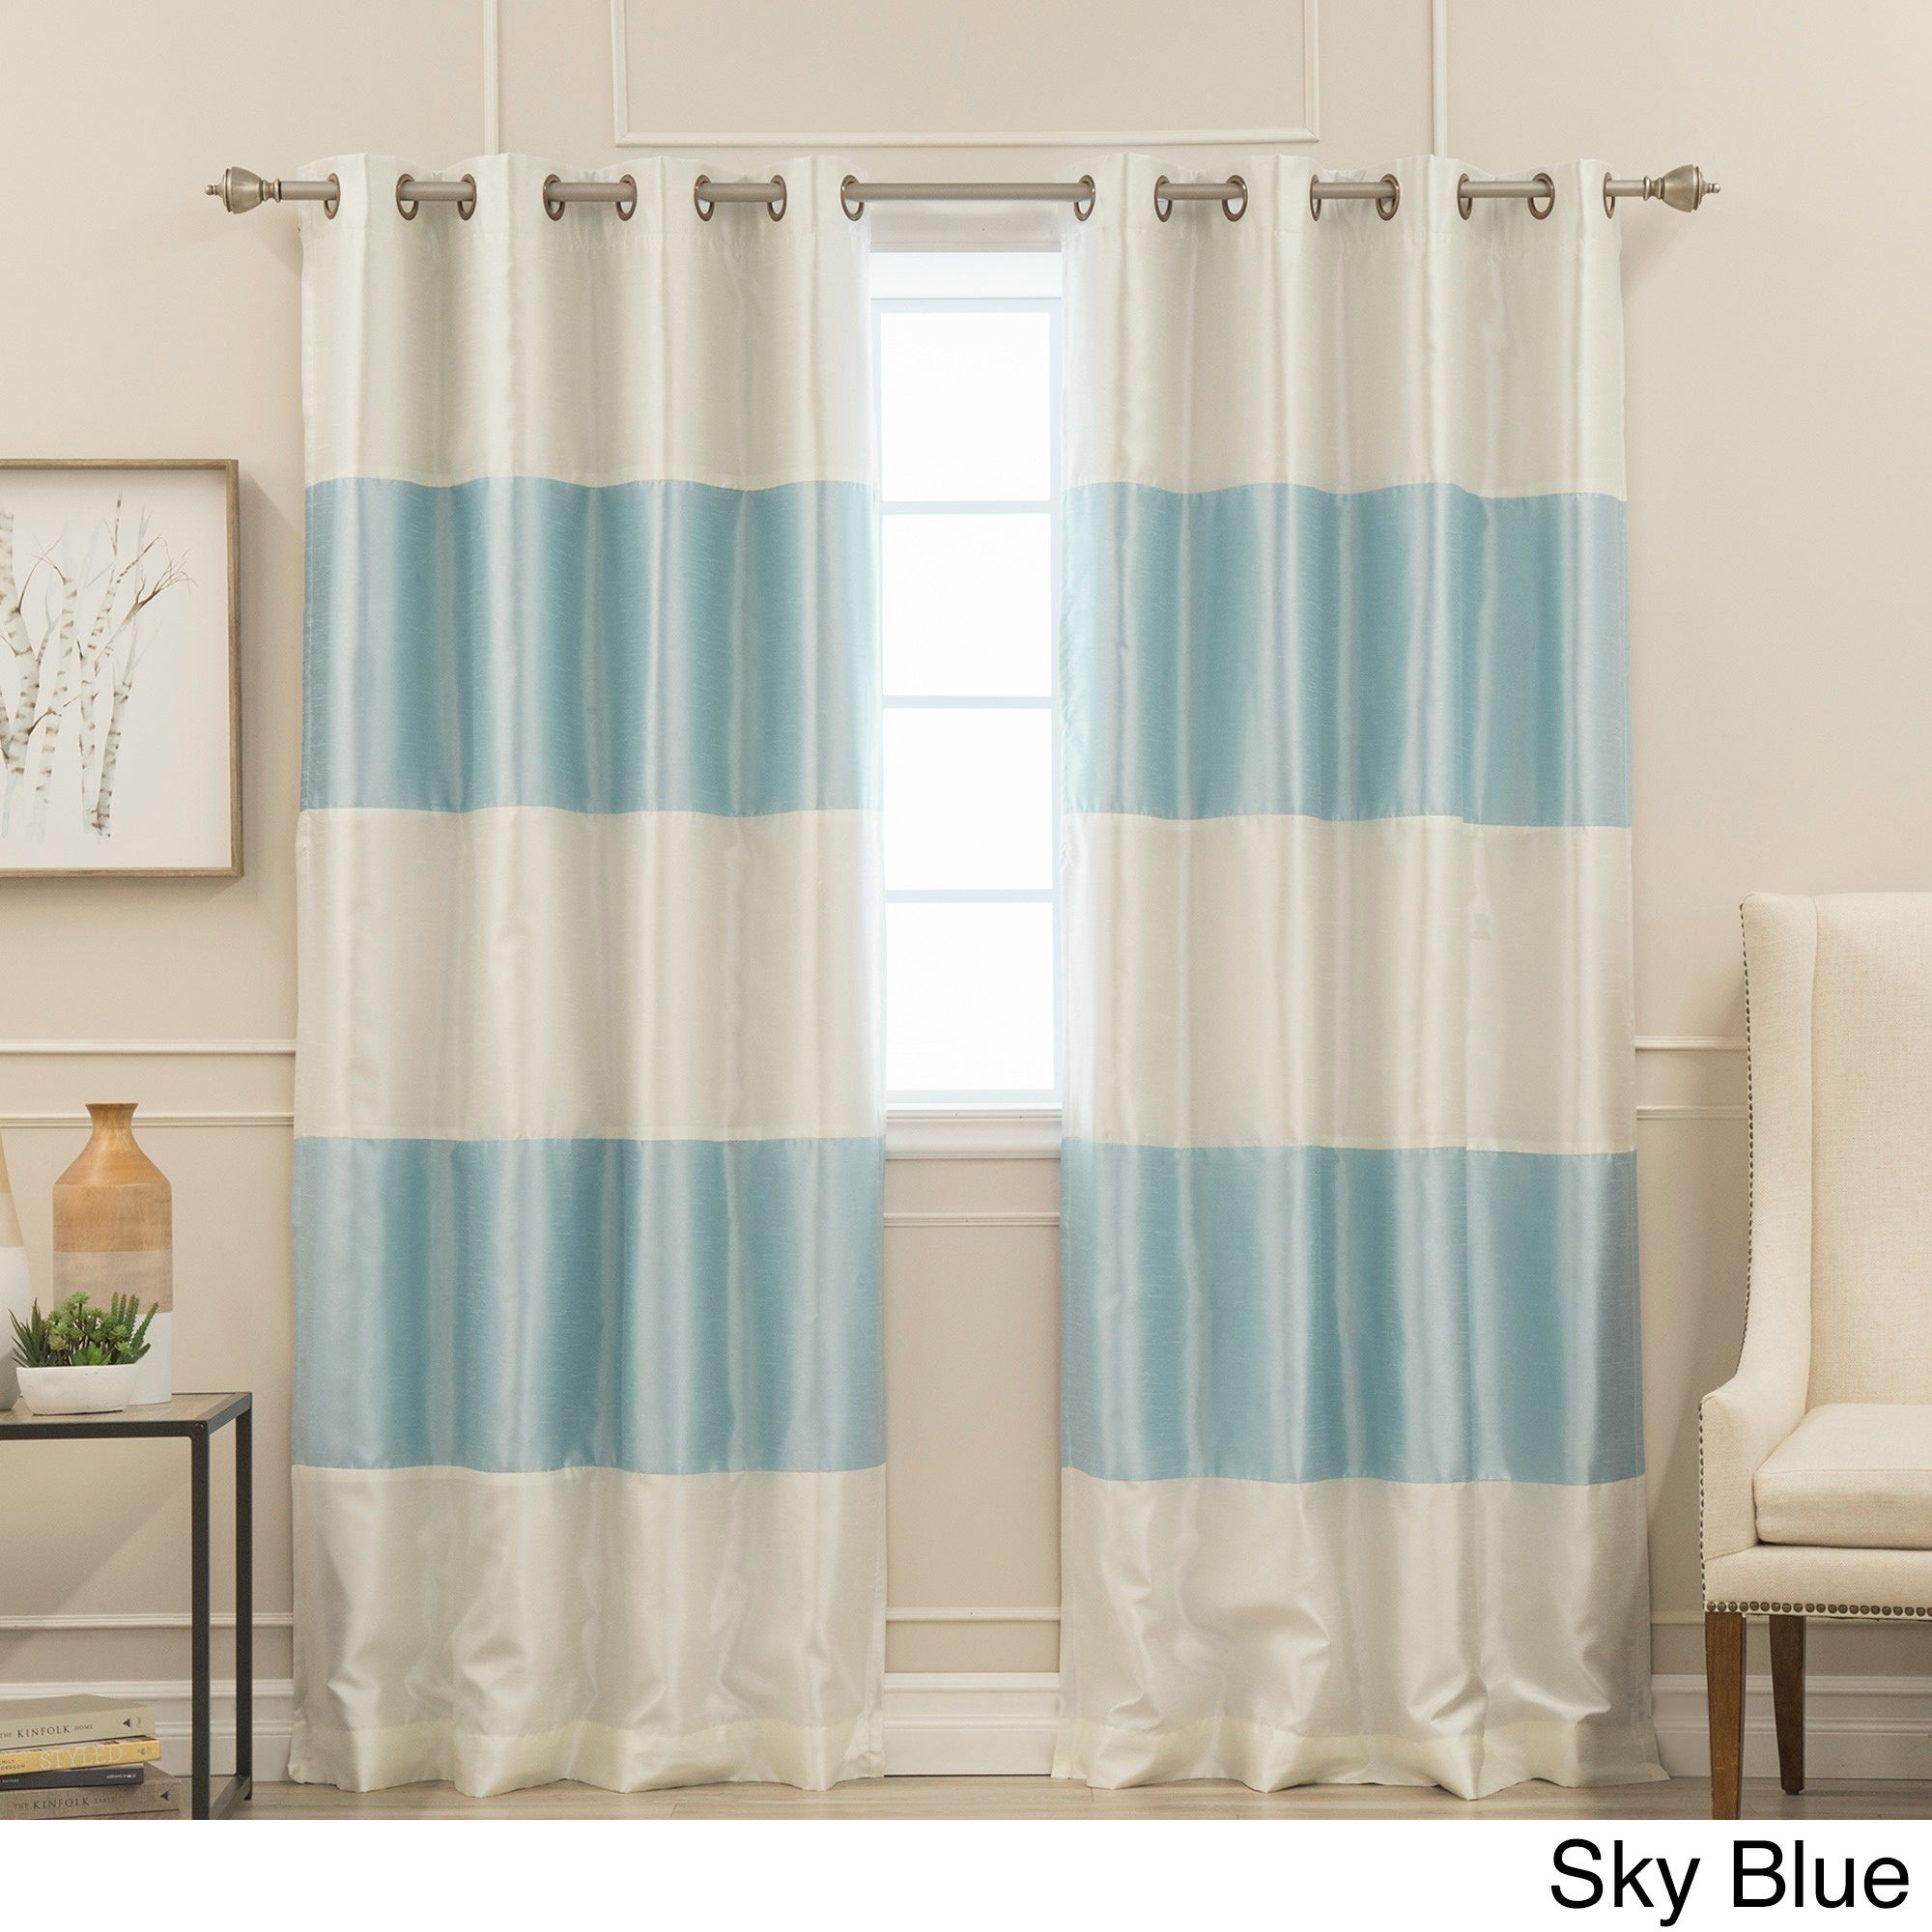 cute purple extraordinary treatments full picture blue cabin drapes kids for girls boy blackout bedroom baby blind colored curtains window coral curtain lined shams and s tar pinch p striped kid living red teal size girl ideas little in thermal home string organic panels fresh of room childrens